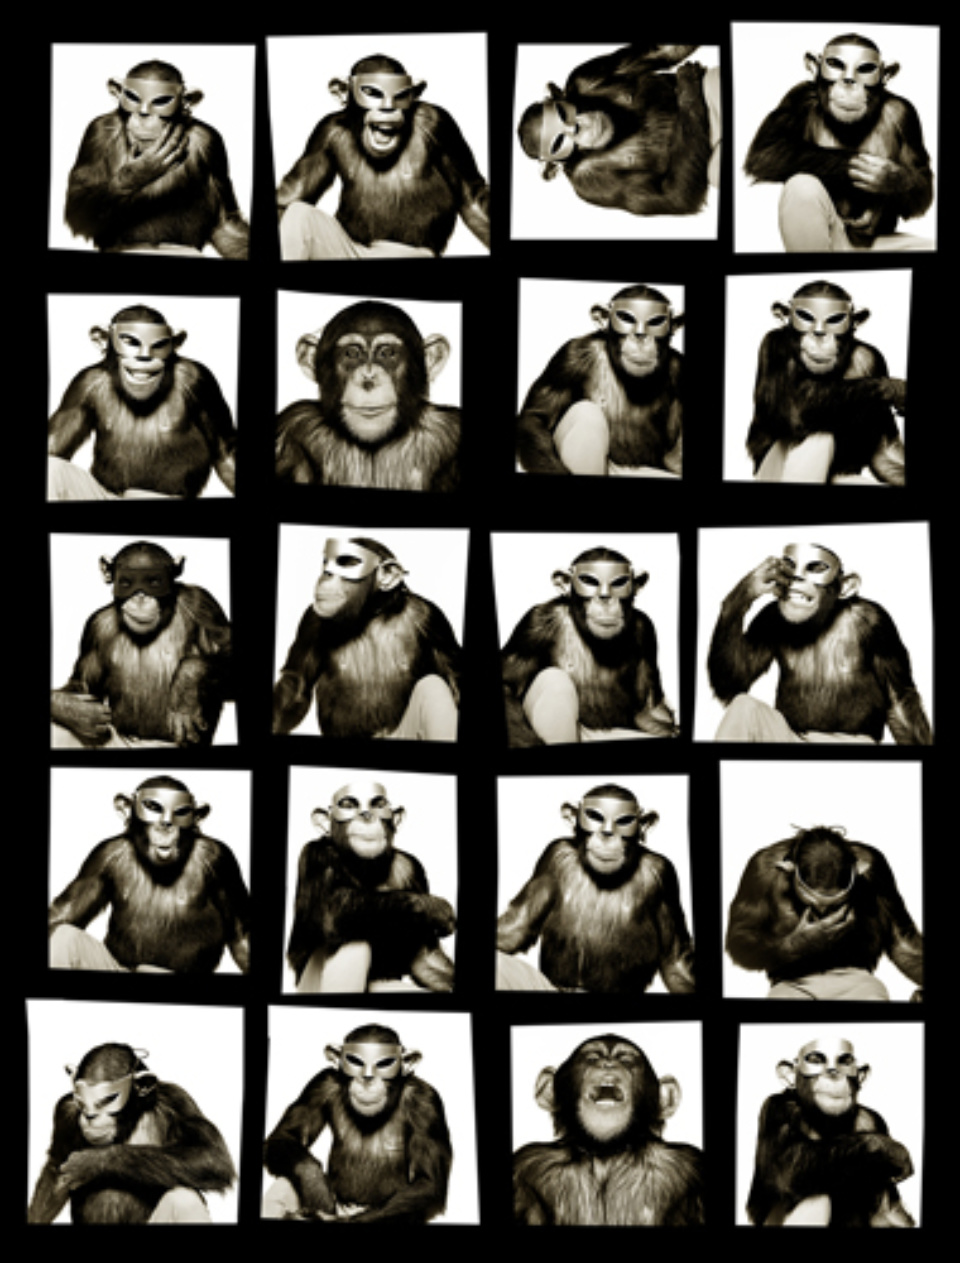 Albert Watson: Monkeys with Masks New York City, 1994 Artist label on verso Archival pigment print 142 x 107 cm Ed. 10